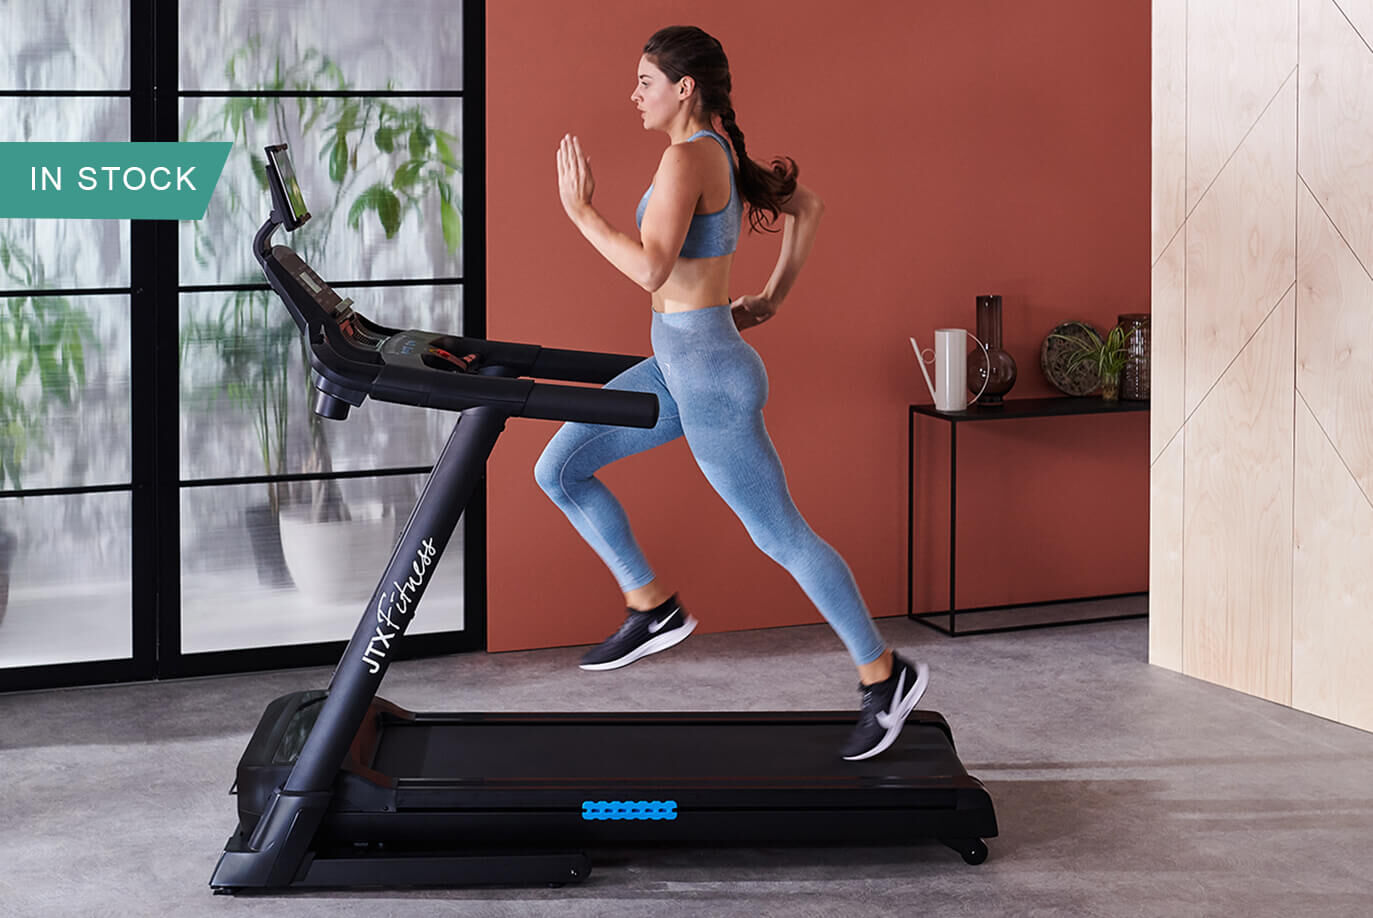 Home Treadmill For Sale From JTX Fitness